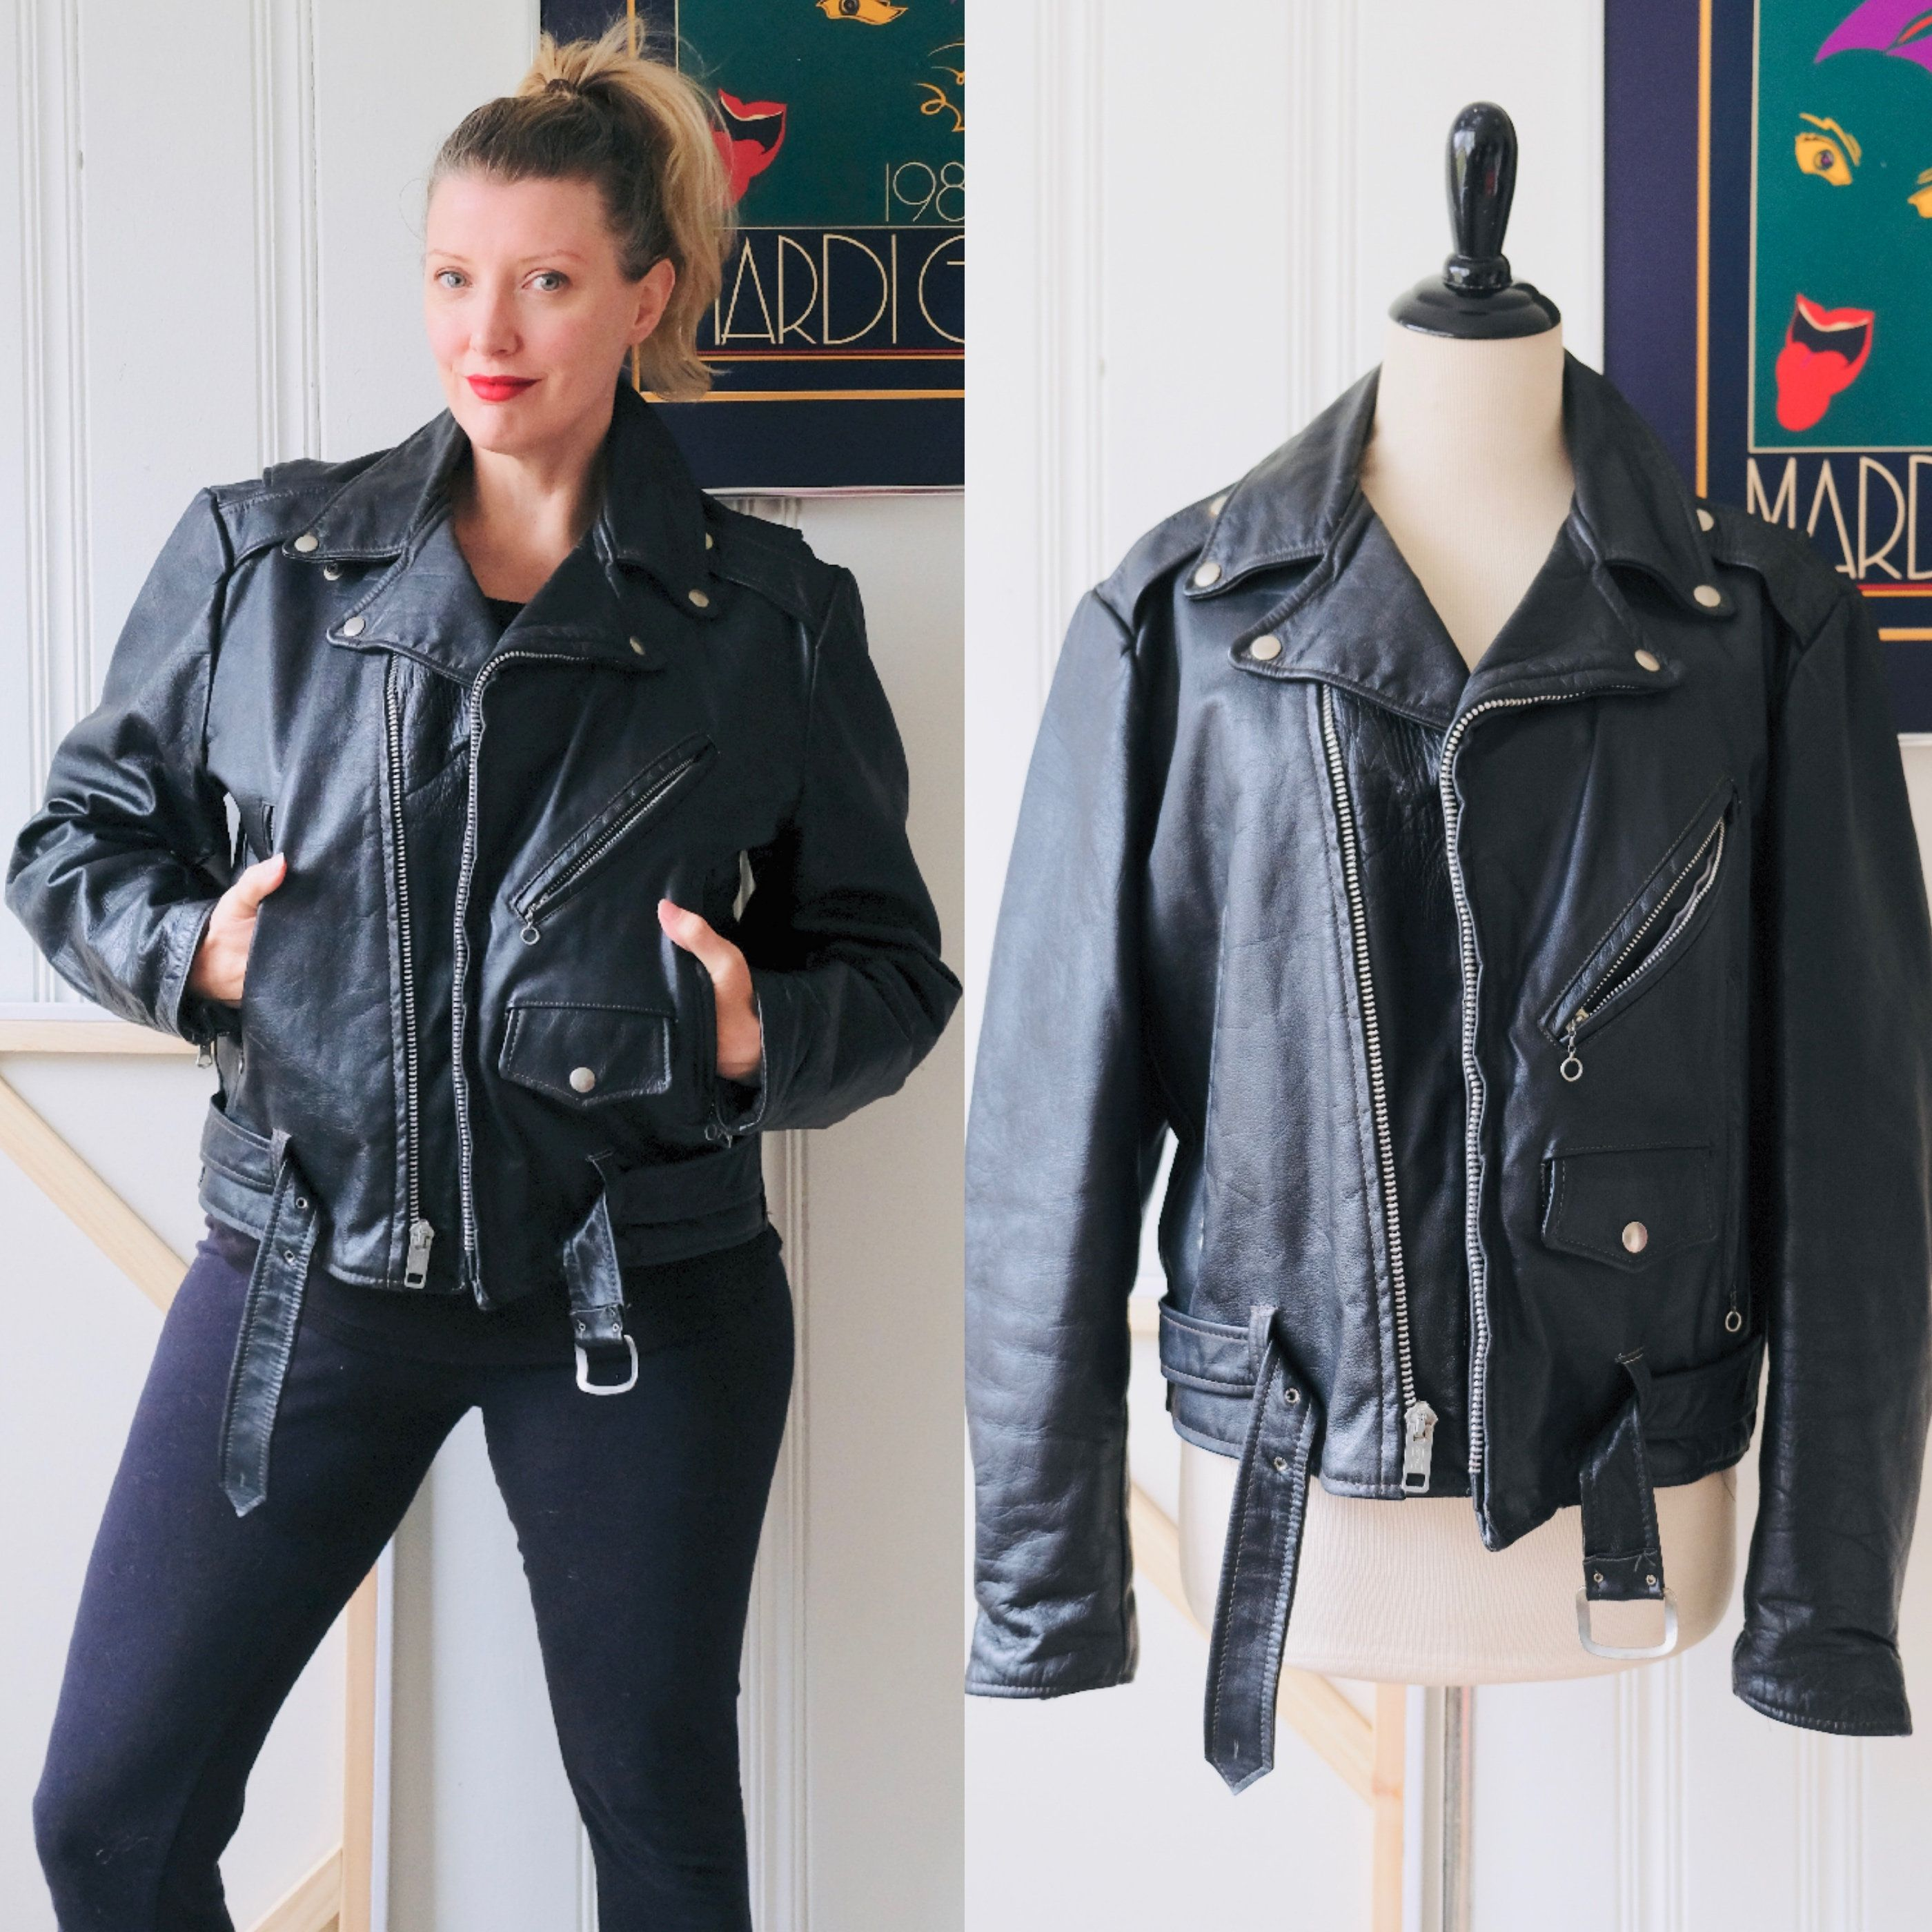 Just Listed 70s Vintage Excelled Black Leather Biker Jacket Mens 42 Womens 12 Https Etsy Me 2x2ppcp Cl Black Leather Biker Jacket Vintage Wear Biker Jacket